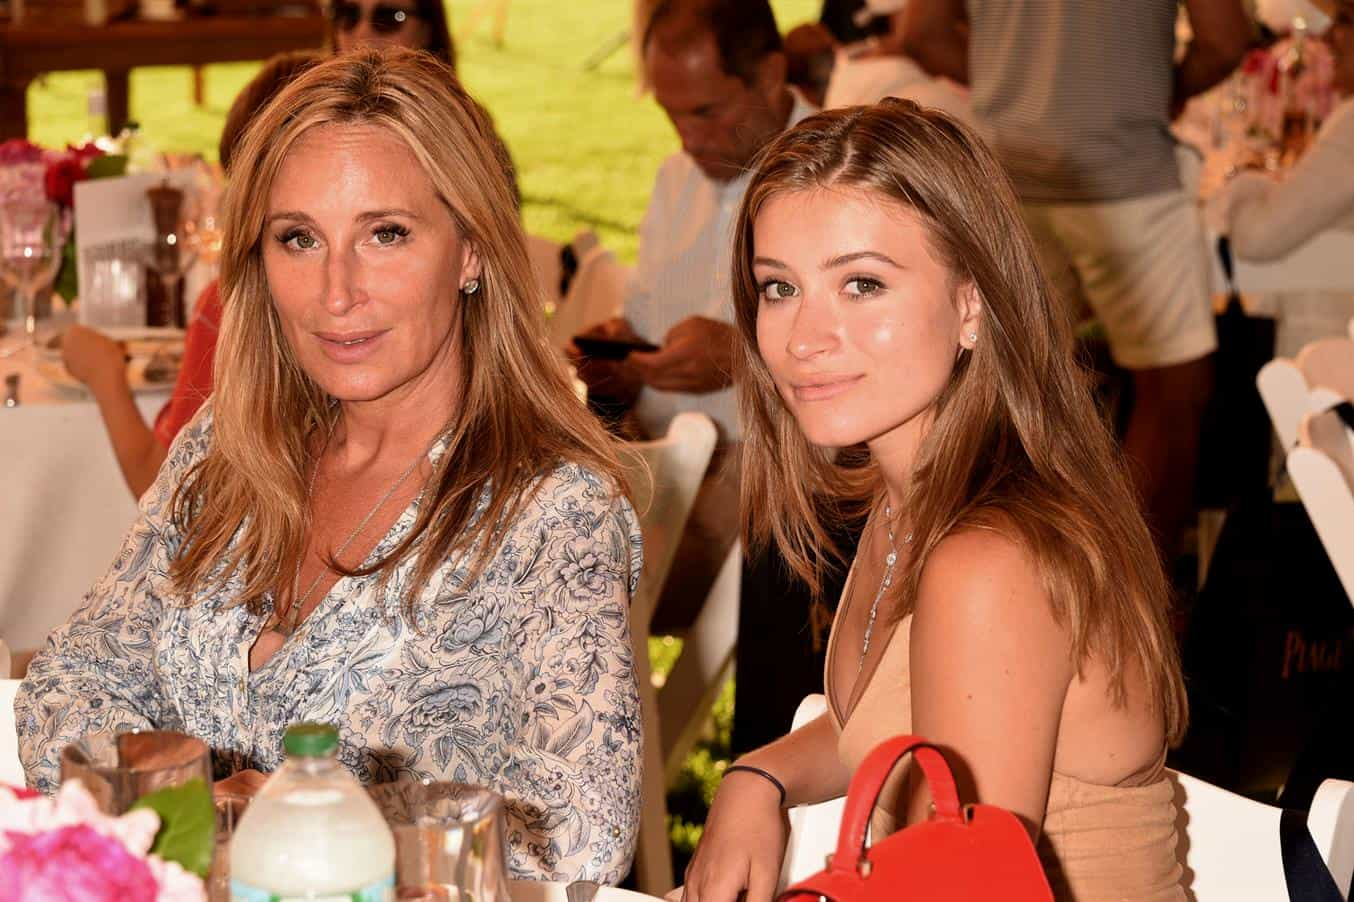 Sonja Morgan Says All of Her RHONY Costars Knew Where Her Daughter Was Going to College Except LuAnn de Lesseps, Dishes on Motherhood and Season 11 Drama